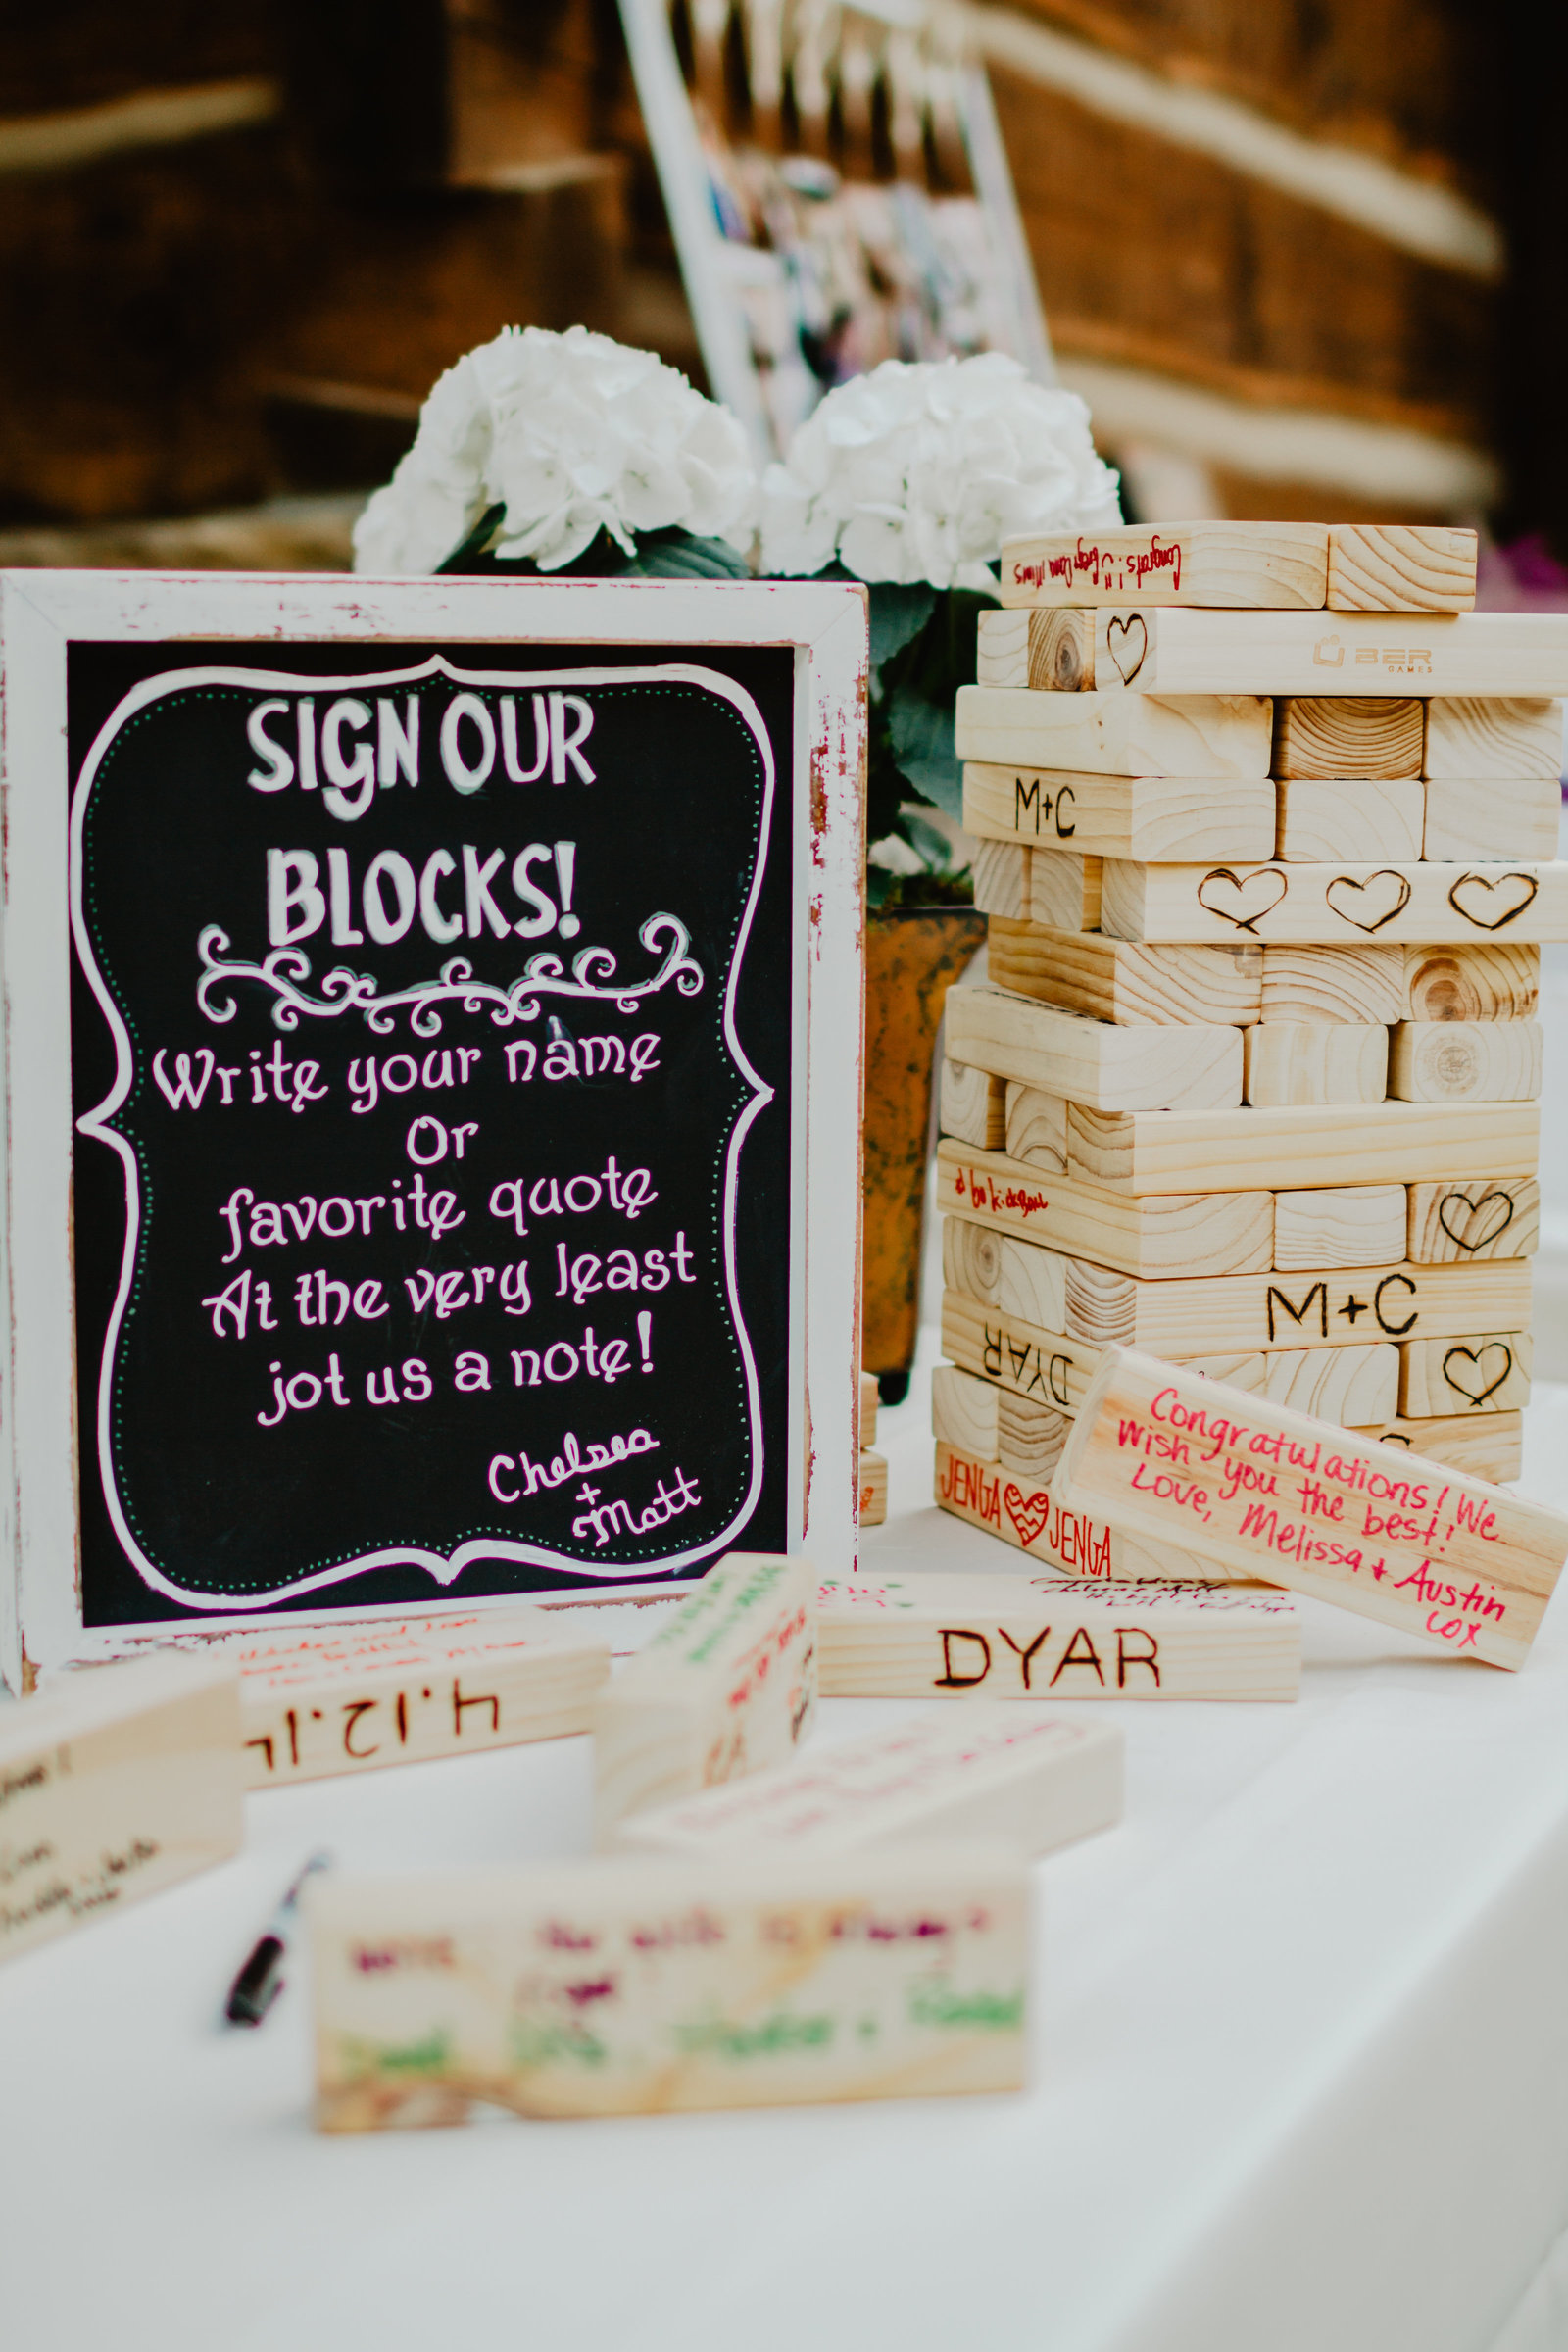 Unique guest book using blocks to make an epic game of jenga